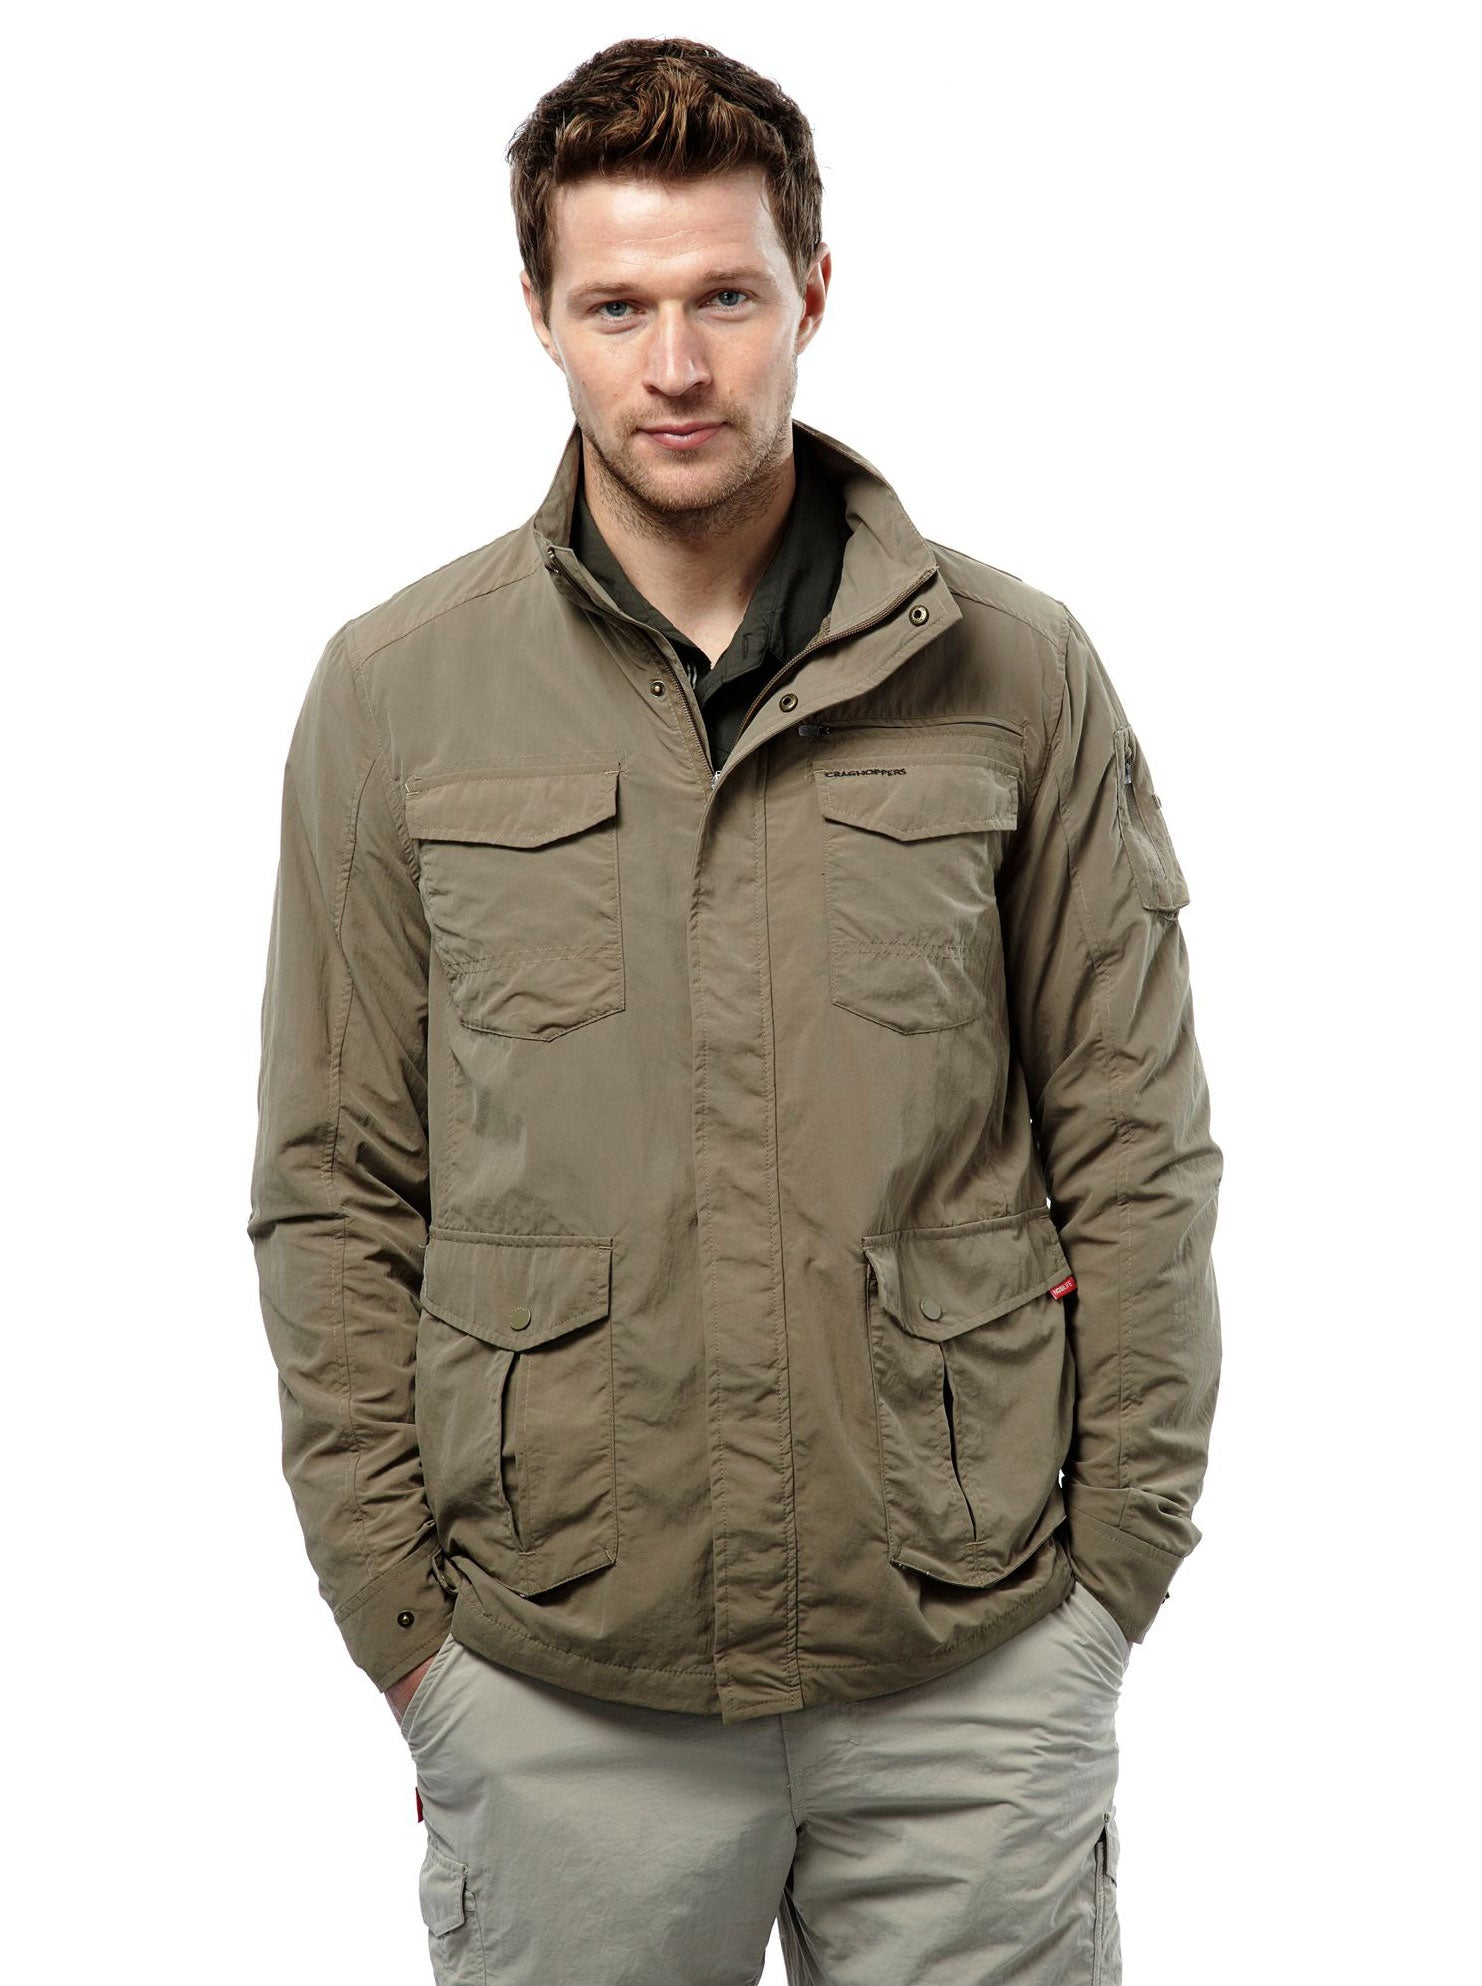 Adventure I Multi-pocket Travel Jacket by Craghoppers